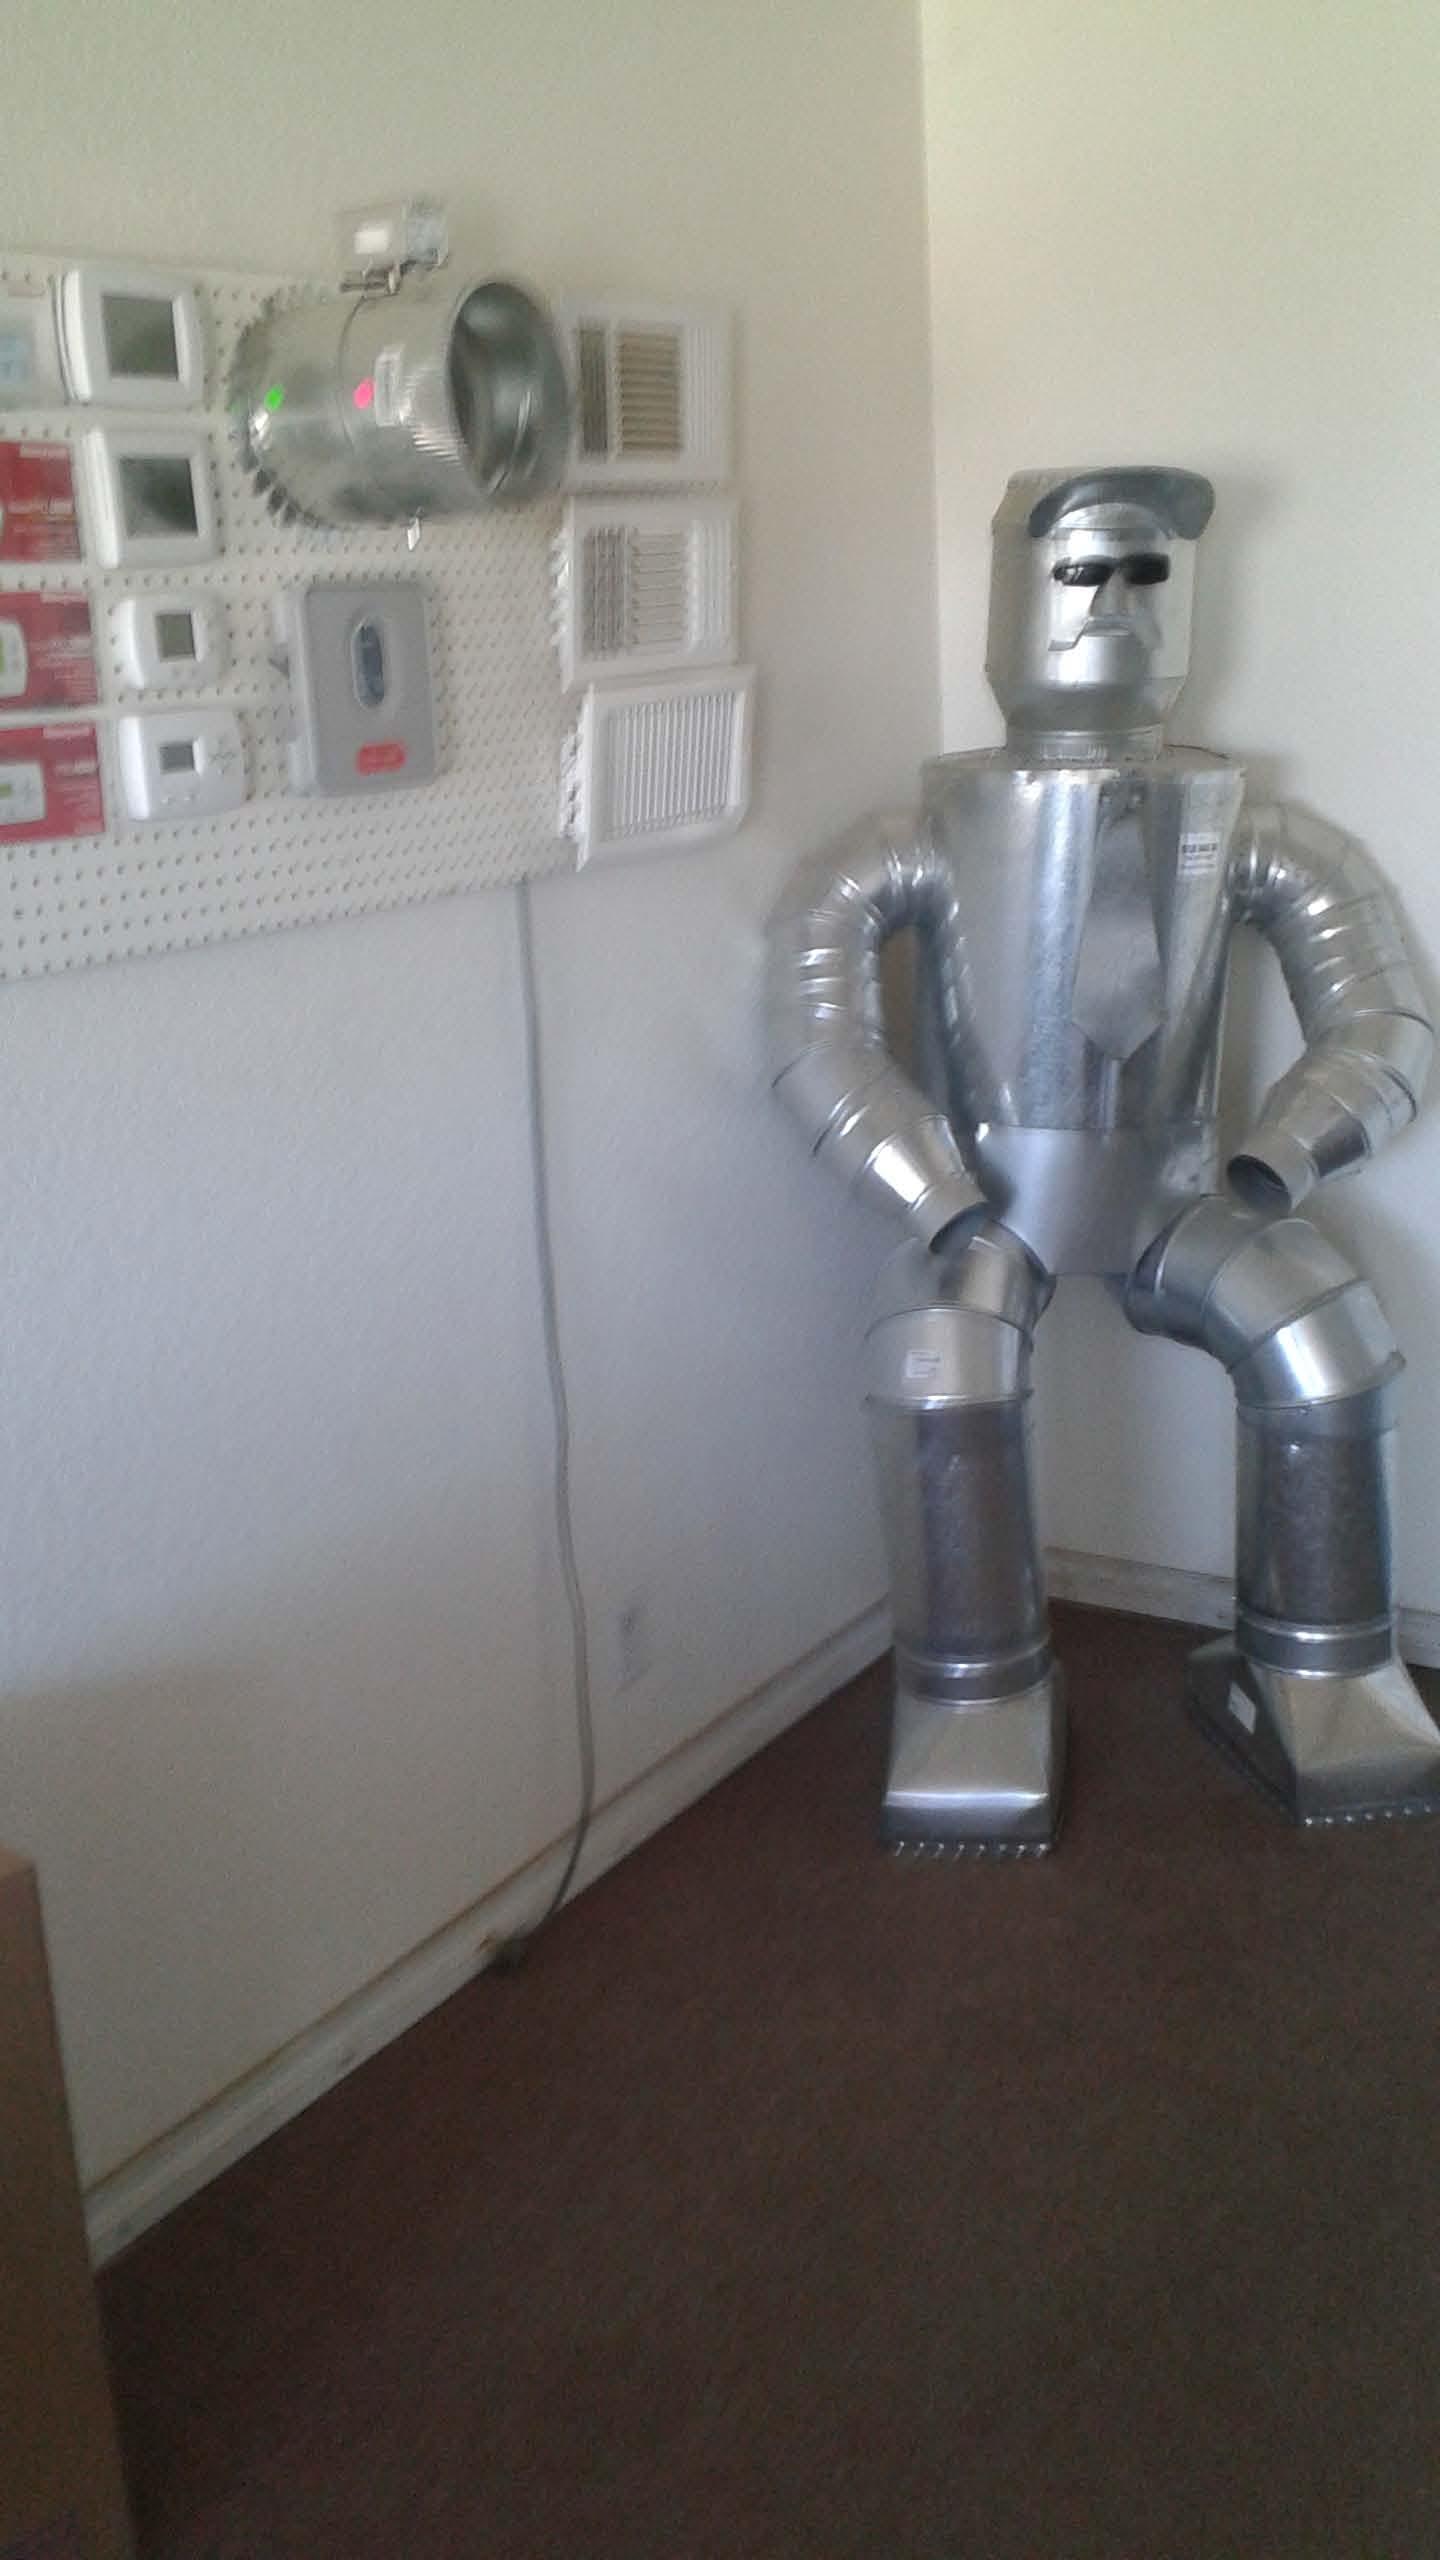 The Tin Man is hopes to see you soon